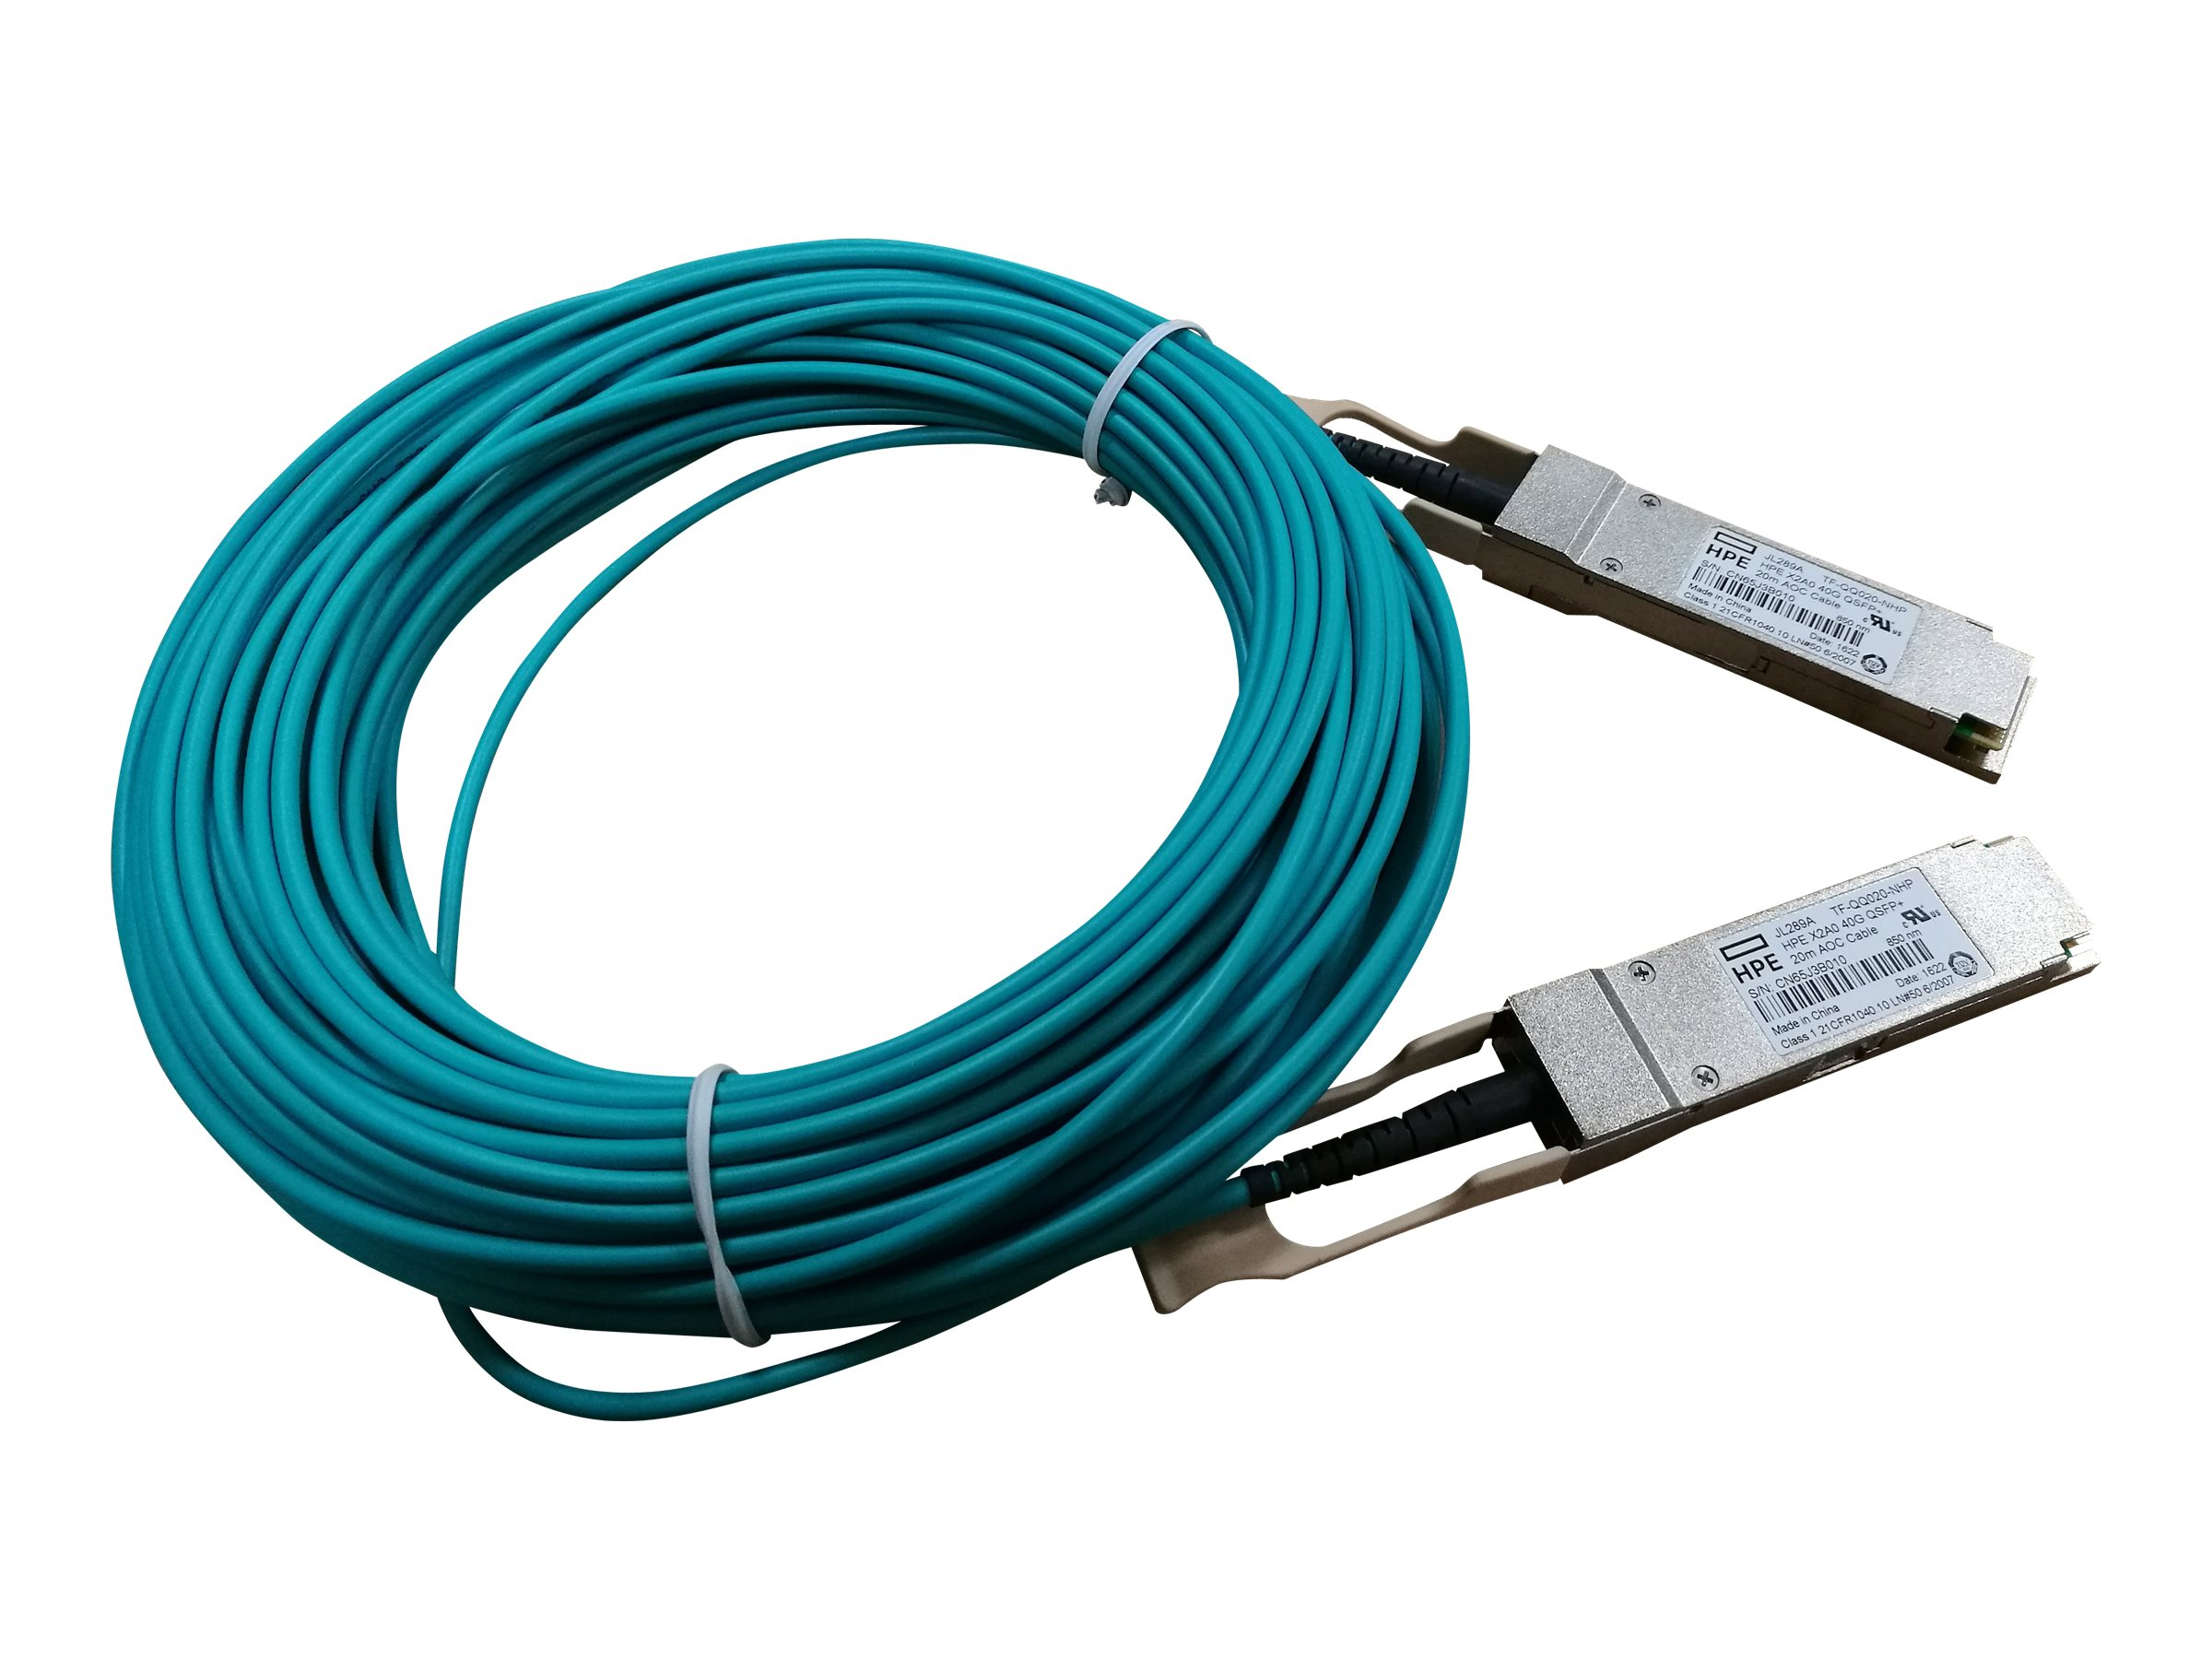 HPE 40G QSFP+ to QSFP+ Active Optical Cable, 20m